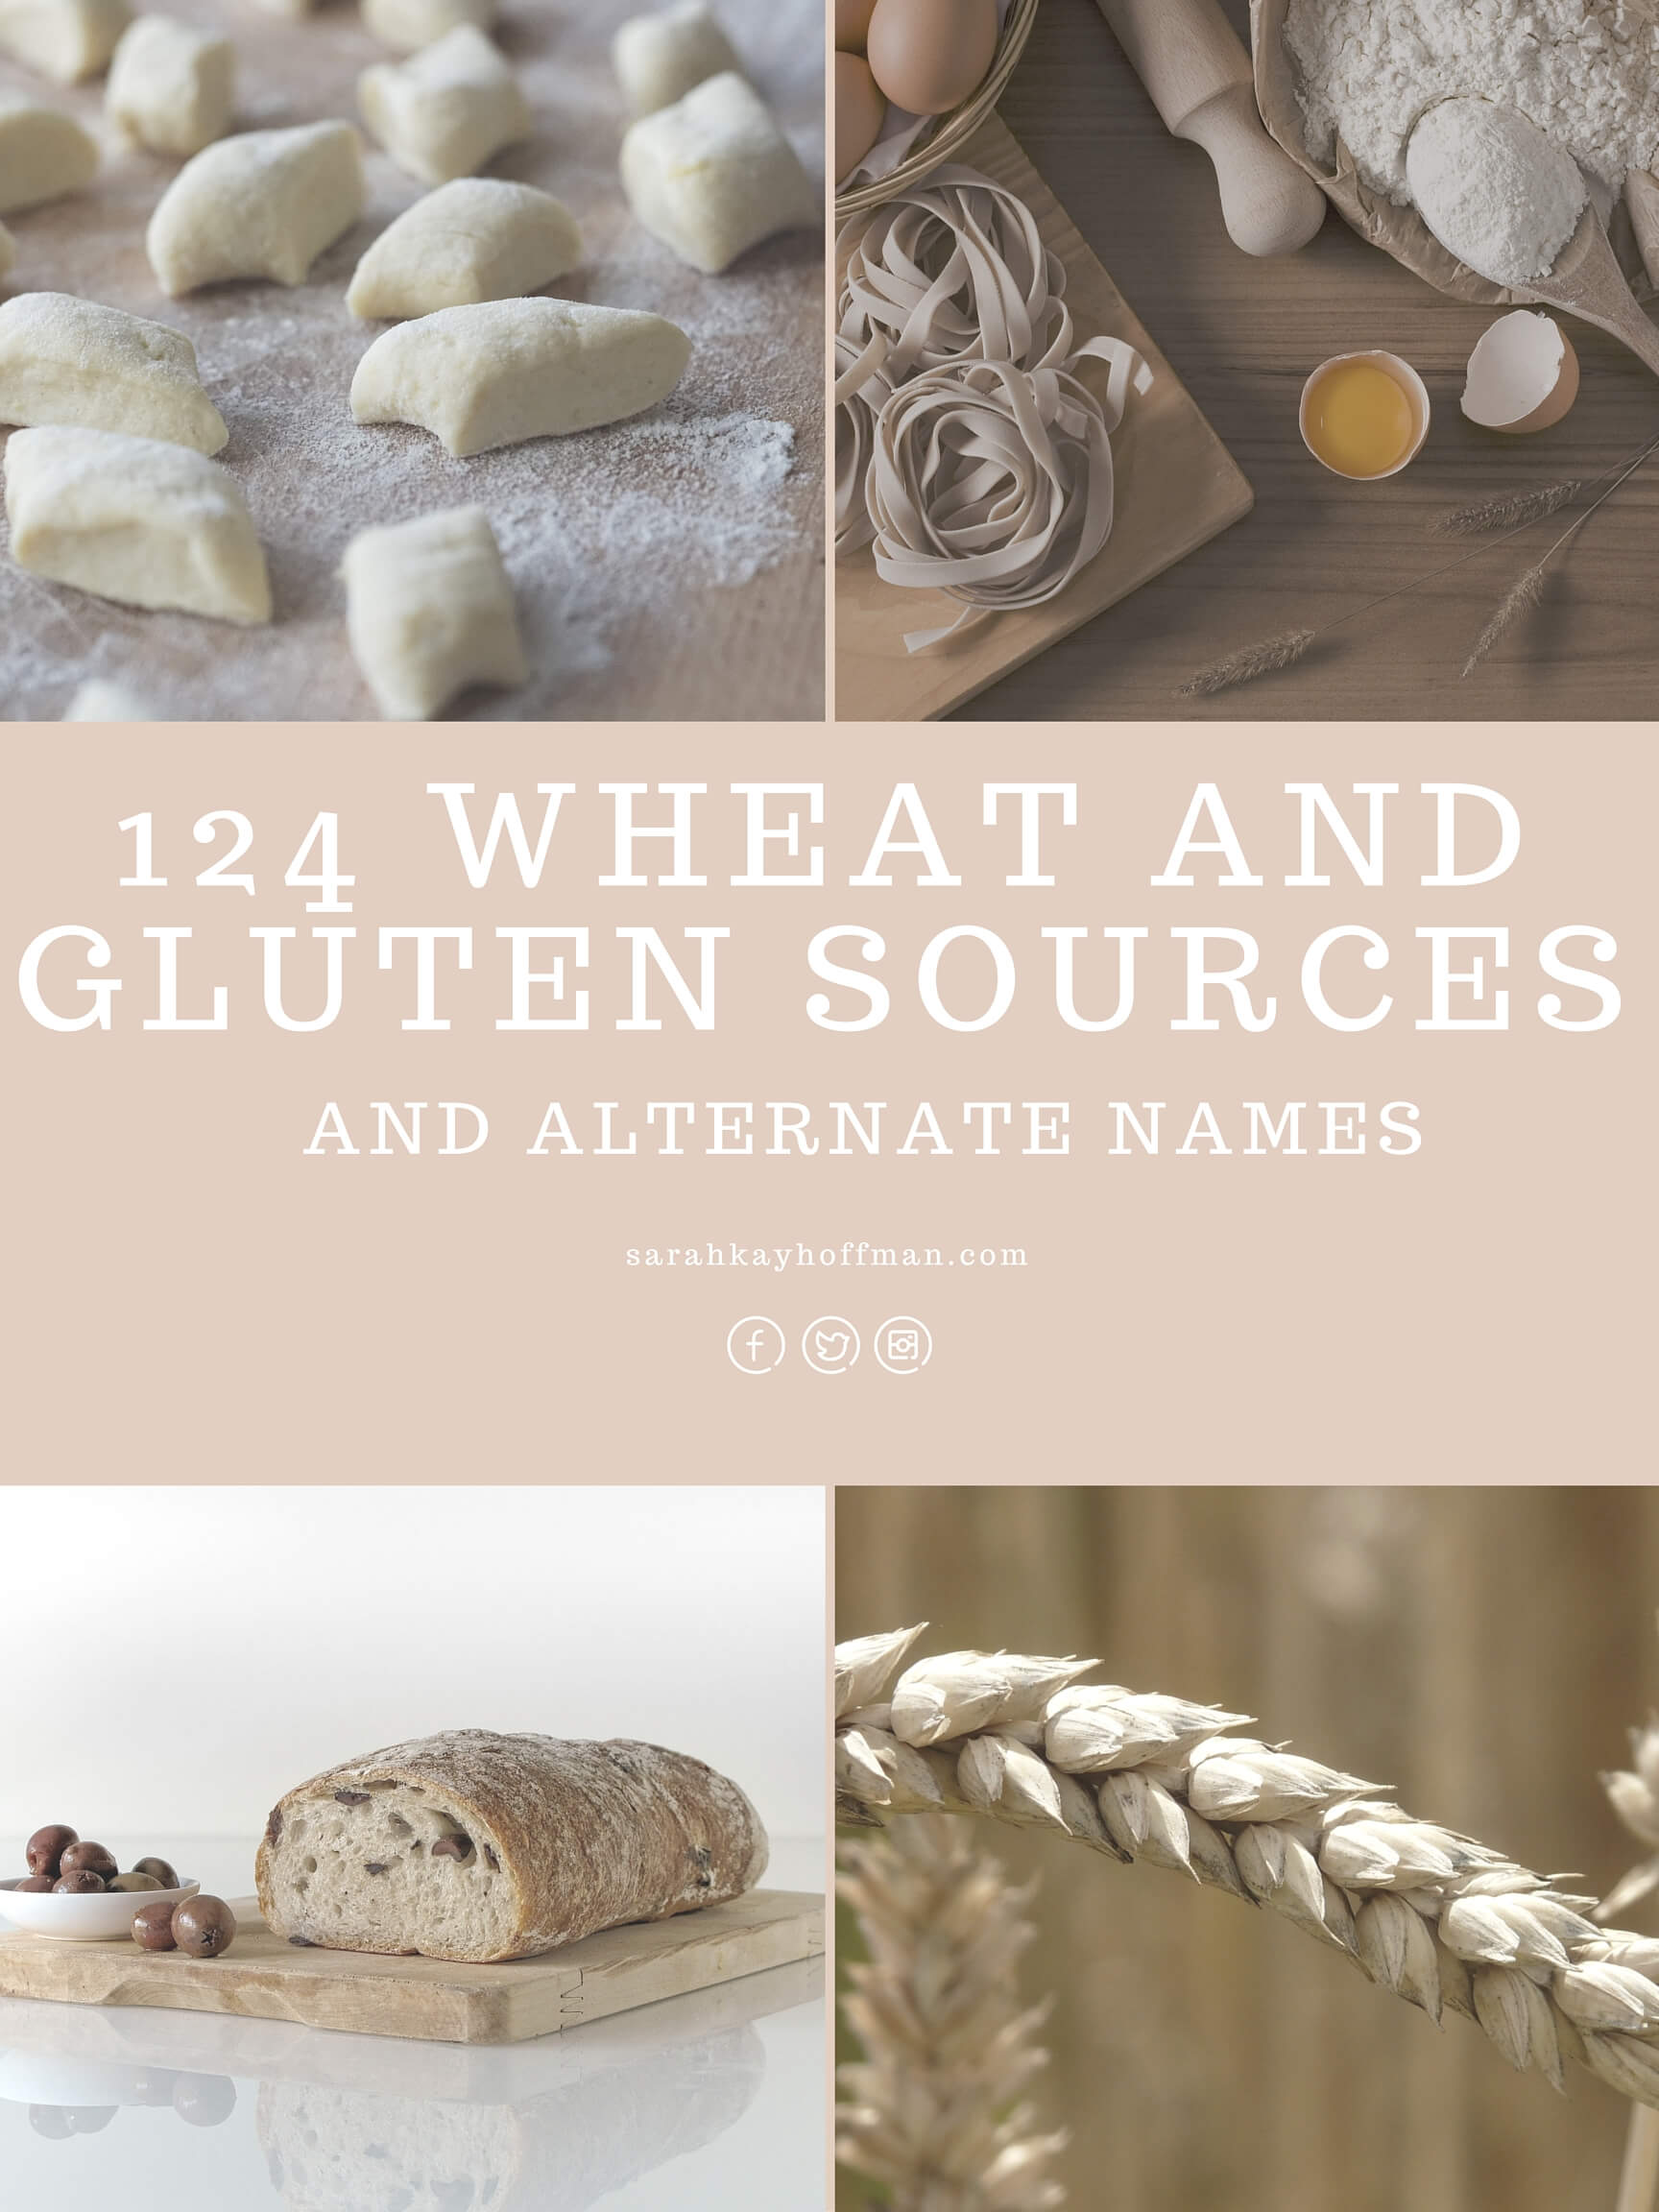 124 Wheat and Gluten Sources and Alternate Names sarahkayhoffman.com Help! I'm Gluten Free. Now What?